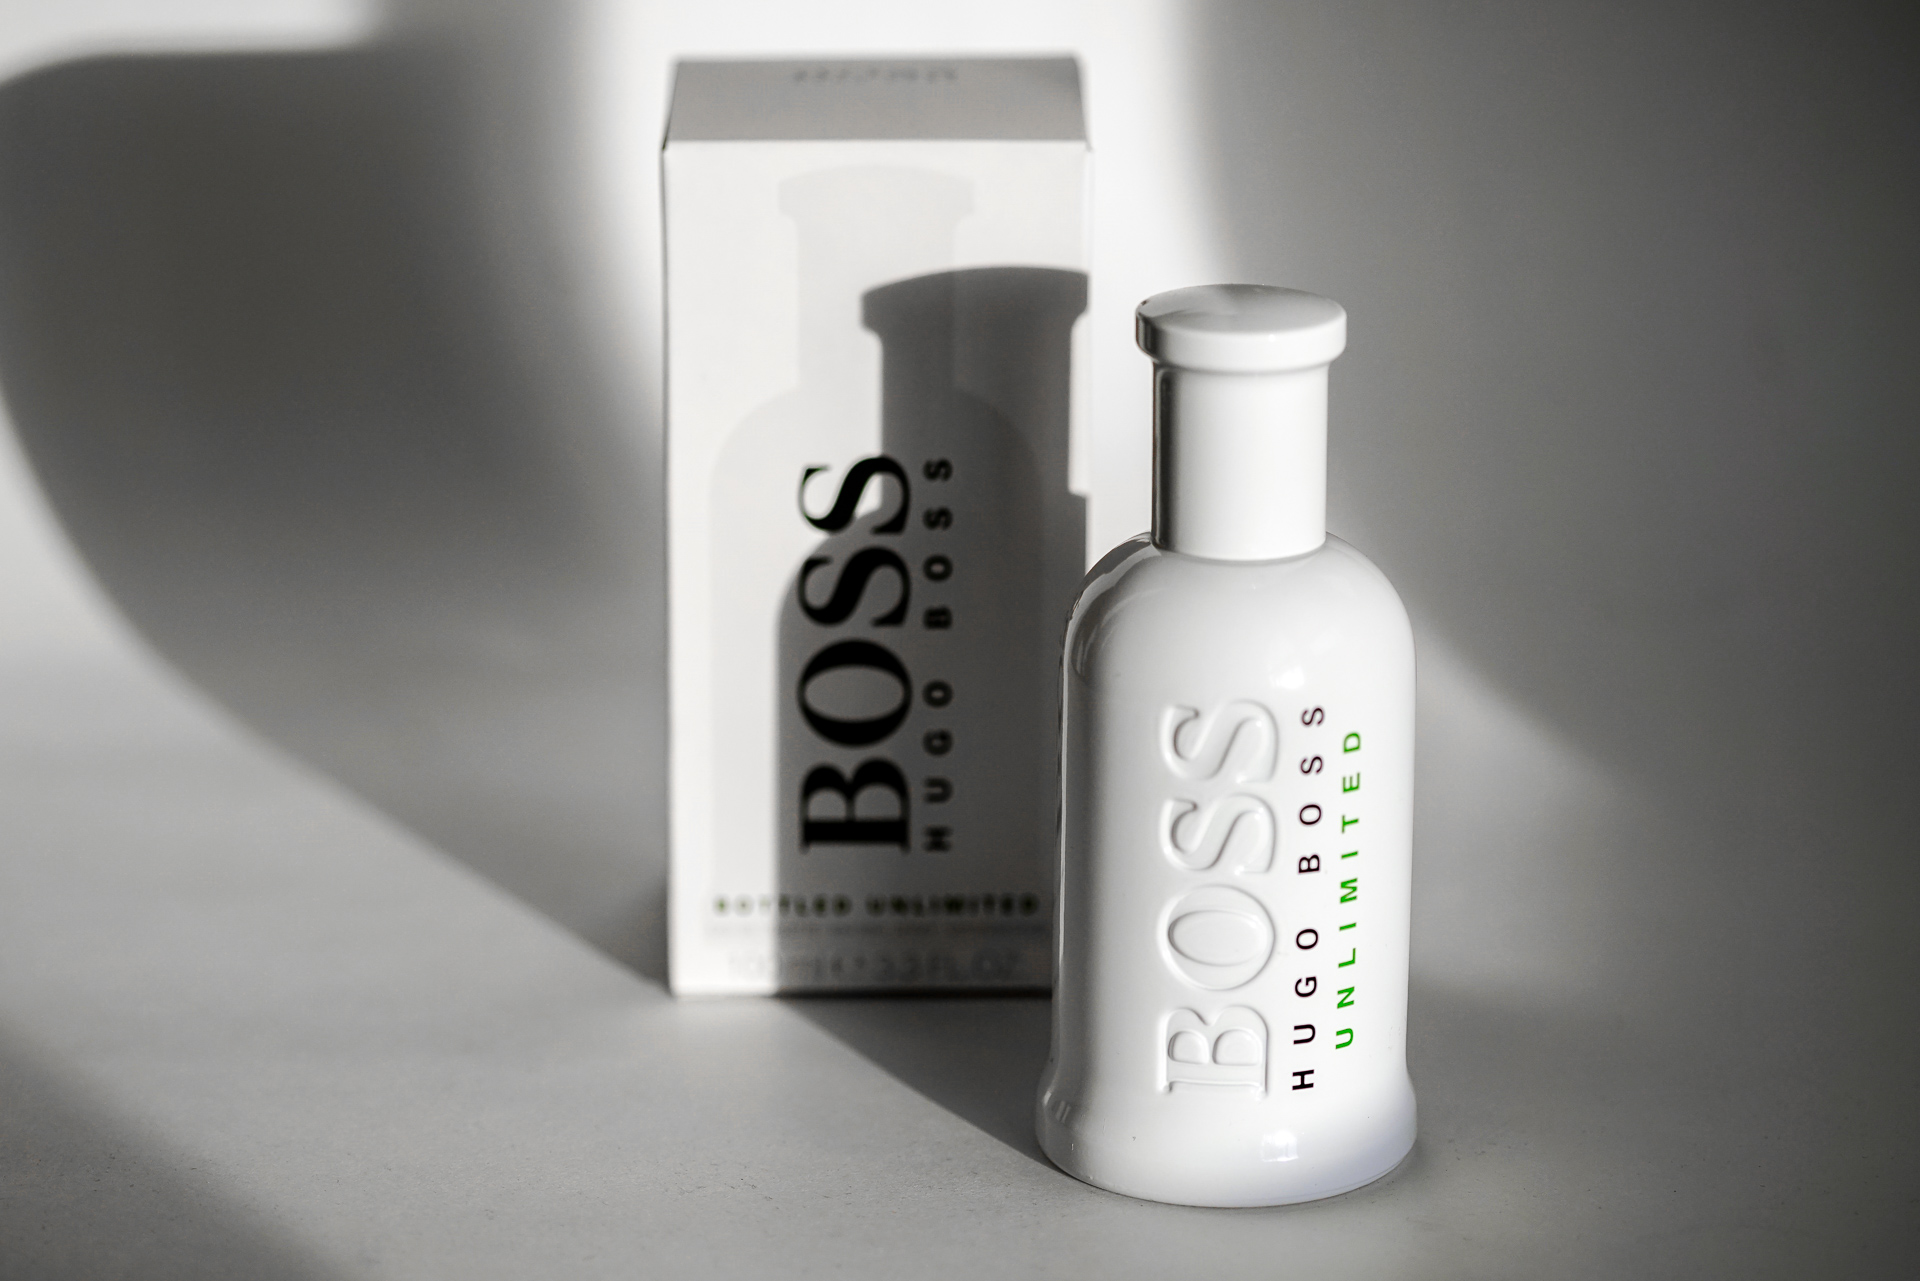 hugo boss unlimited cologne